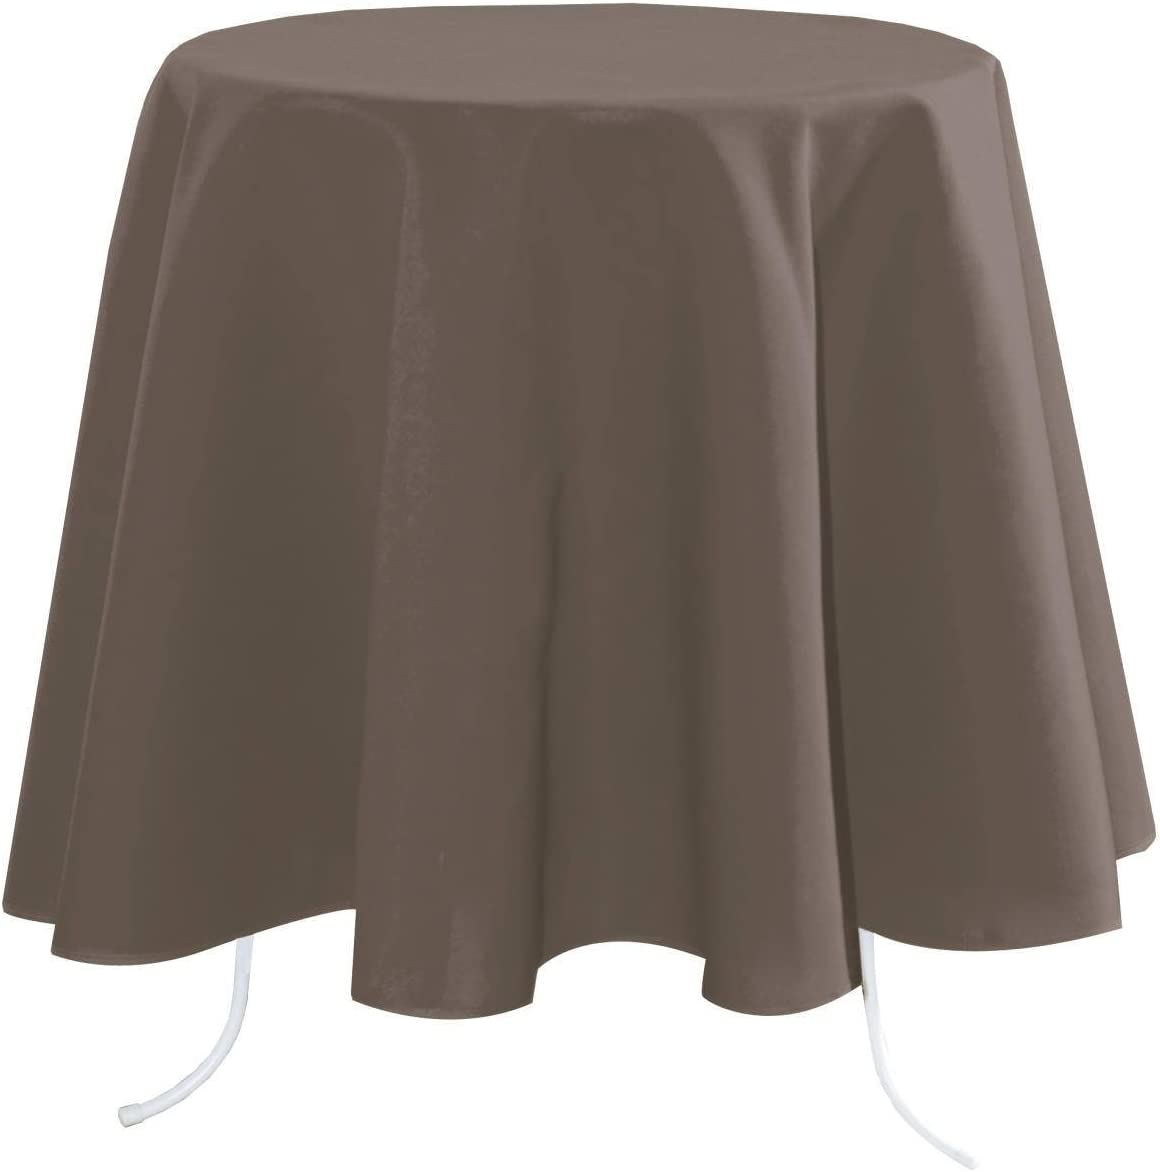 Lovely Casa N154689003 NELSON Nappe Polyester Taupe 300 x 148